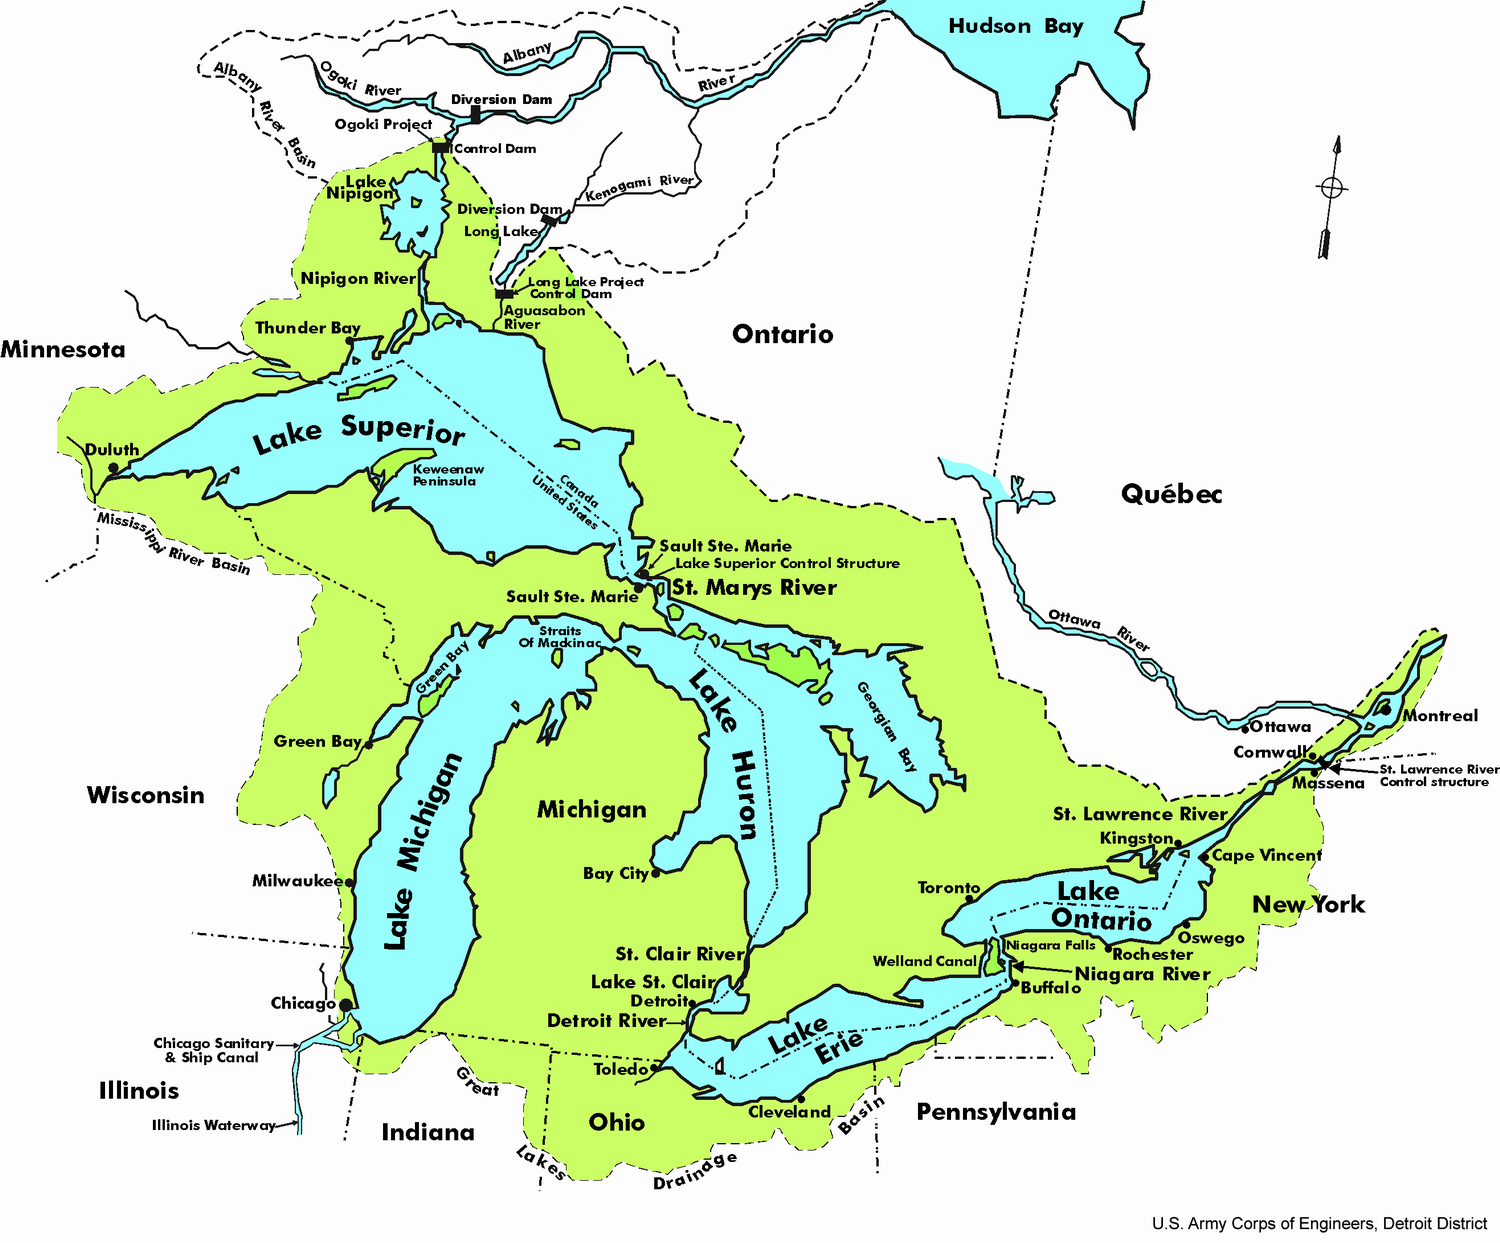 Map Of Canada With Great Lakes Great Lakes   Simple English Wikipedia, the free encyclopedia